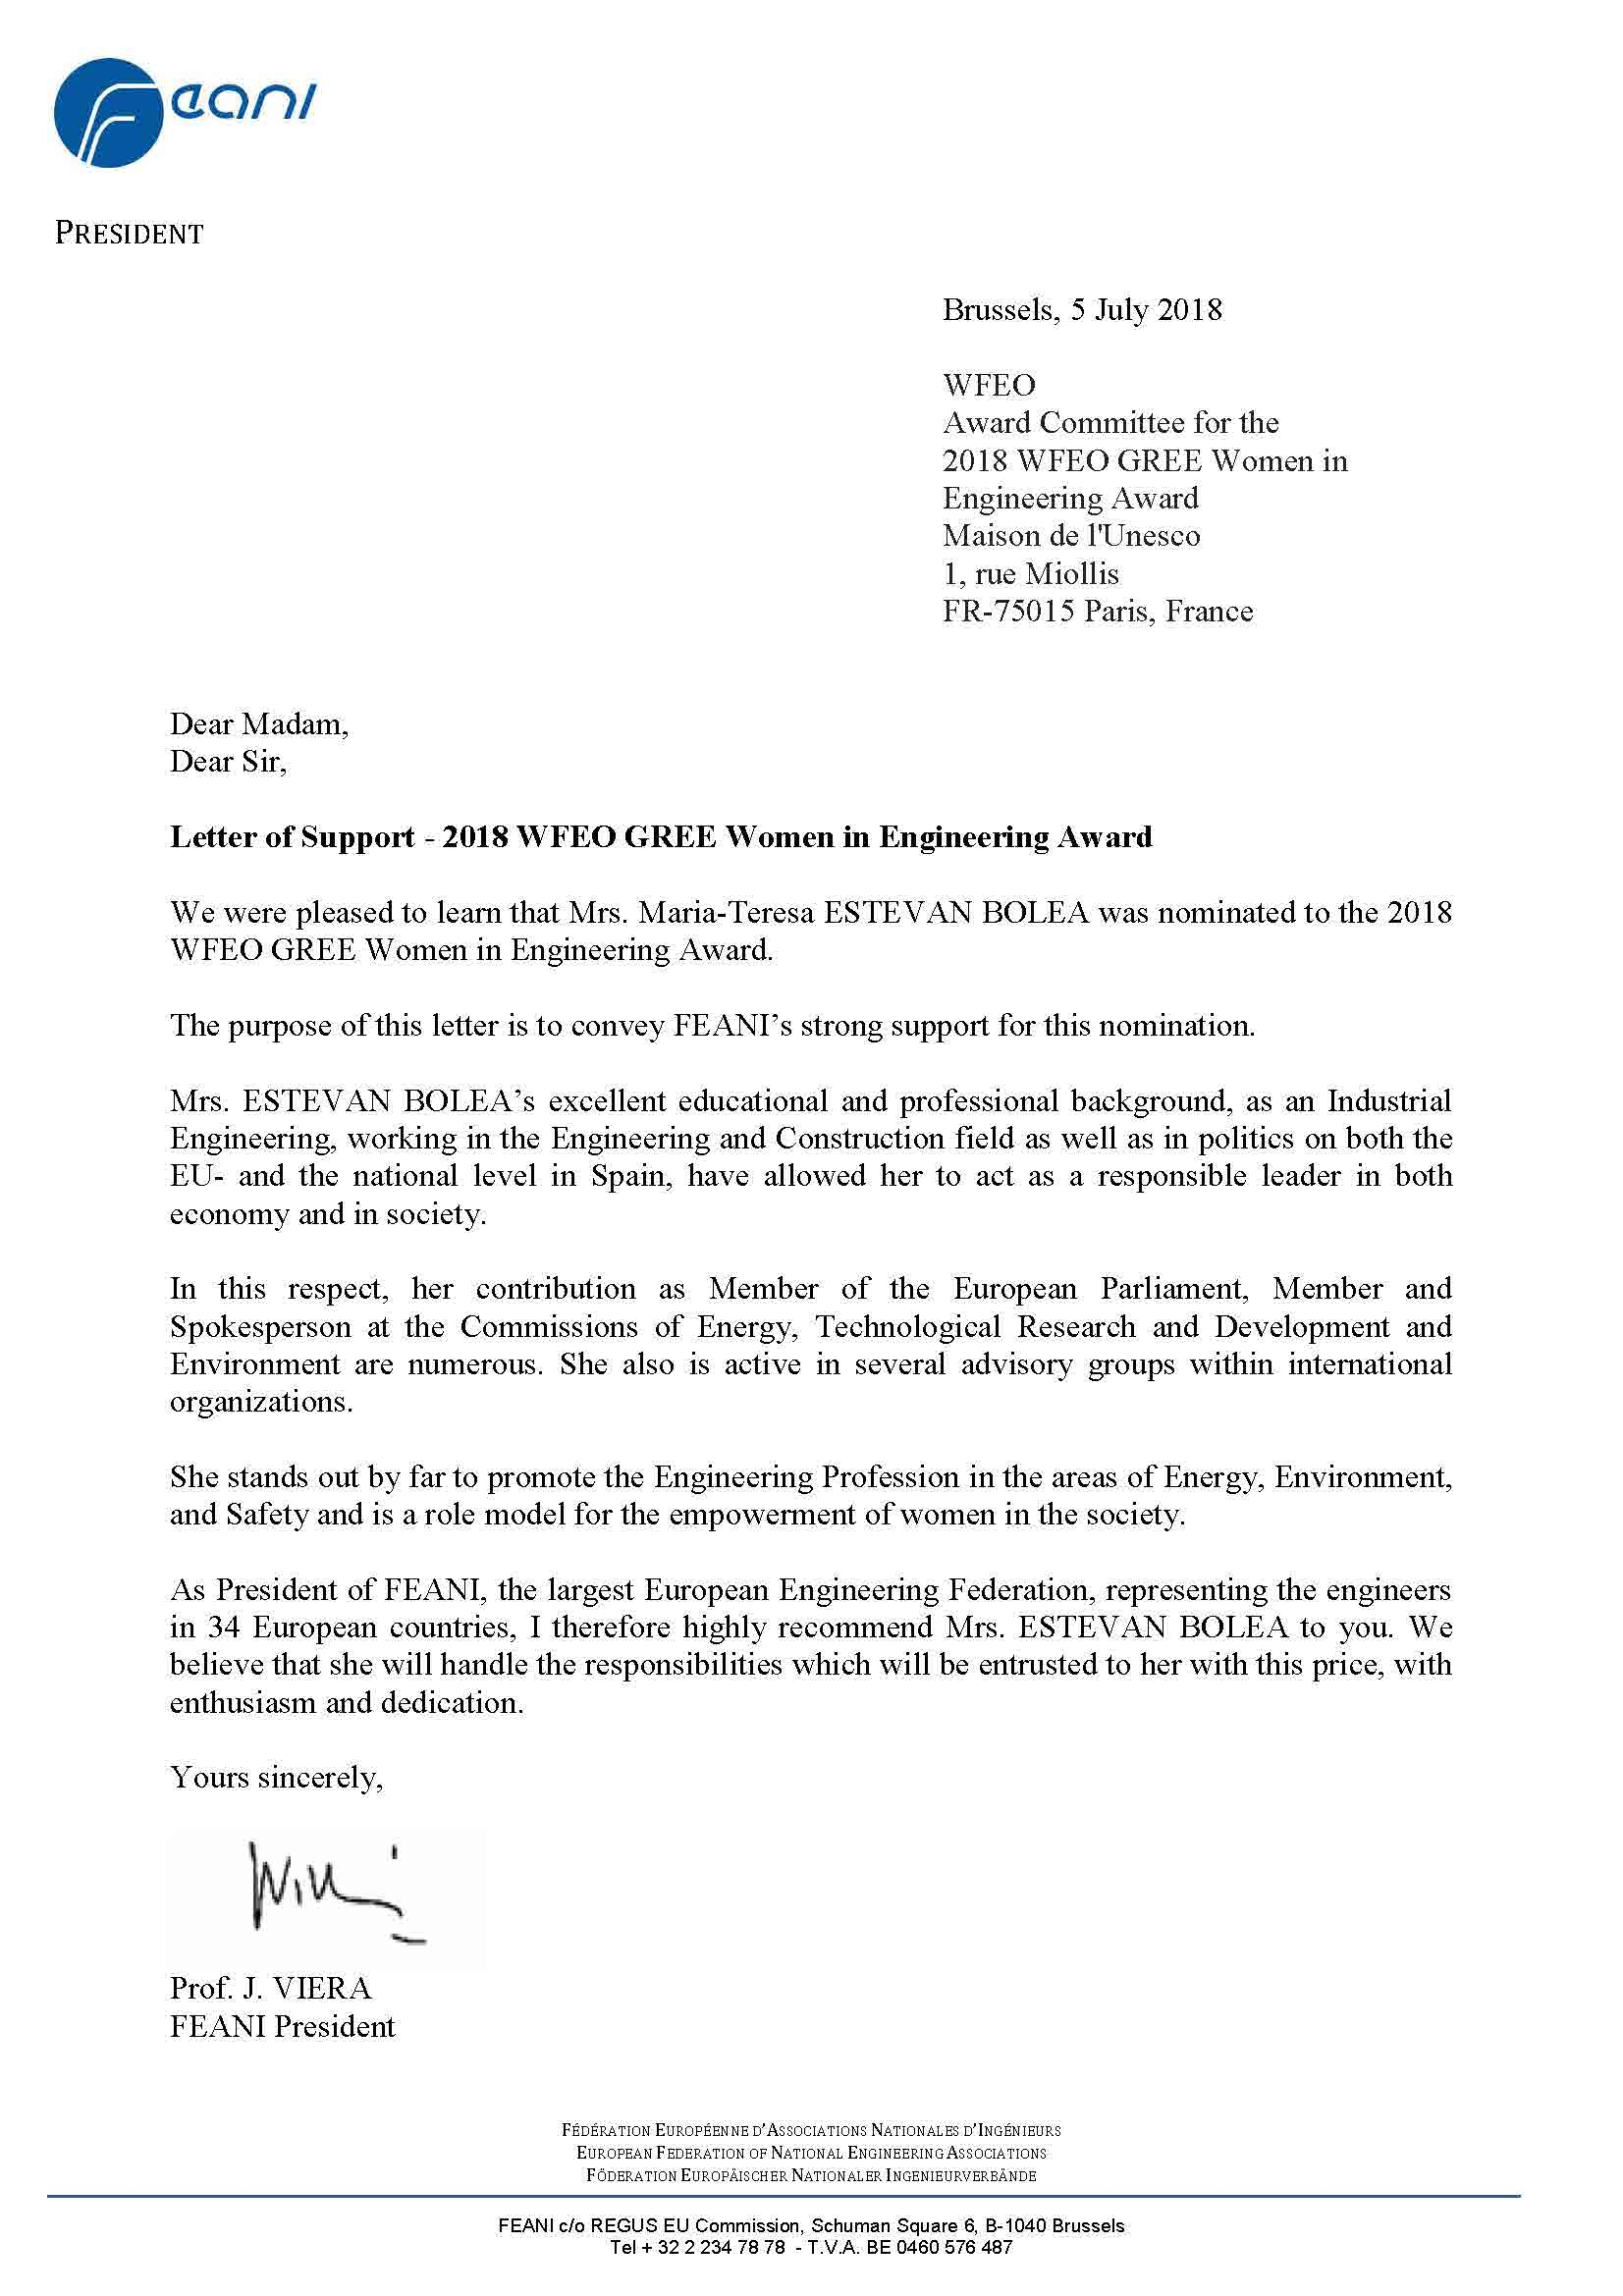 17-Letter of Support President FEANI Estevan Bolea for GREE Women in Engineering Award.jpg